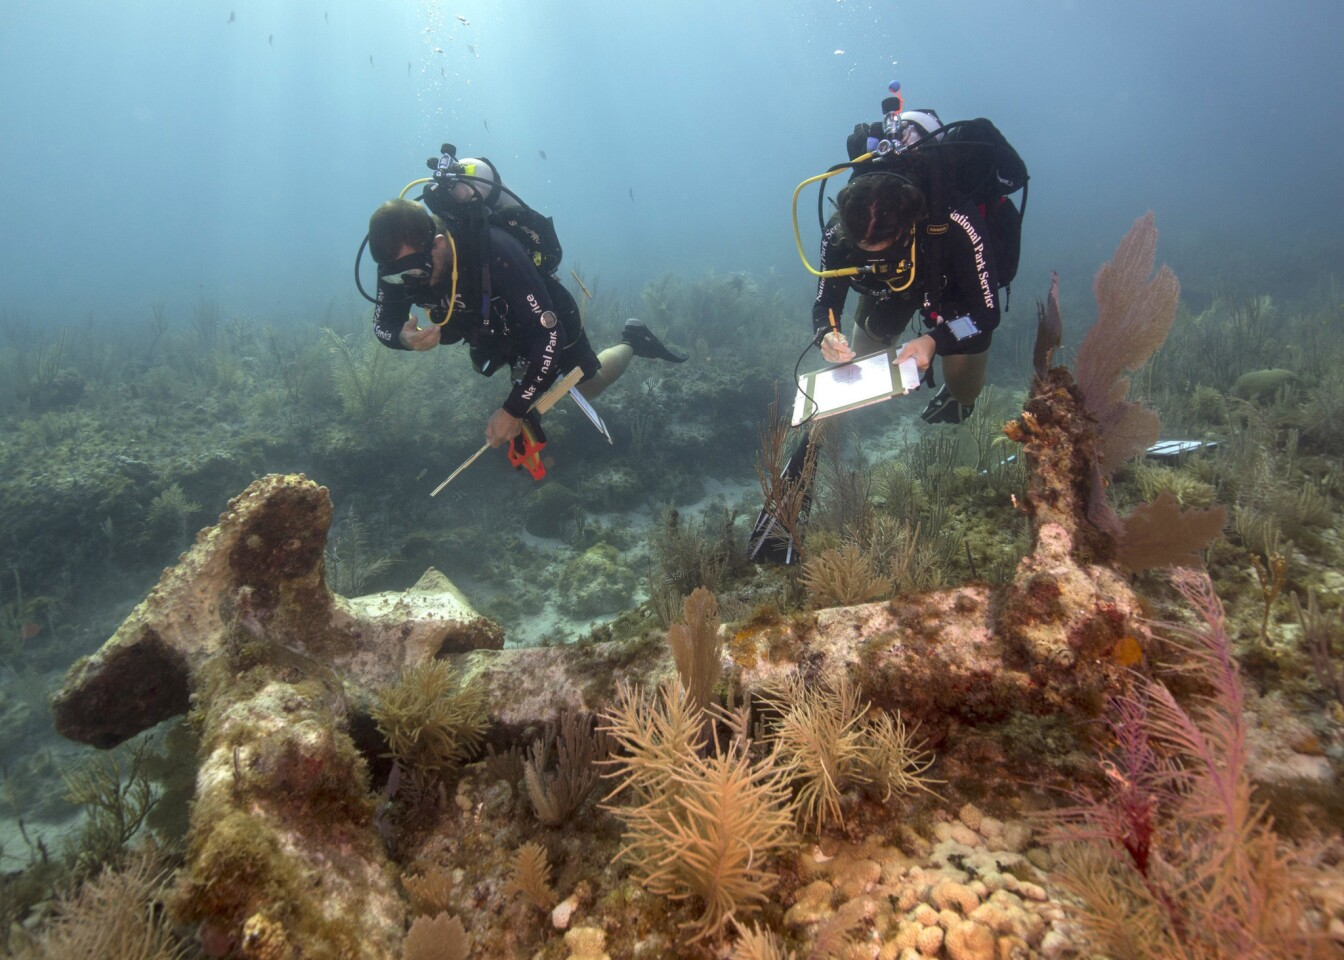 What are your national park memories? Maybe some of these photographs will jog your thinking. Dry Tortugas National Park is located 70 miles from Key West, Fla. Many of its treasures are underwater. National Park Service archaeologists (pictured) document a historic anchor at the park created in 1935.